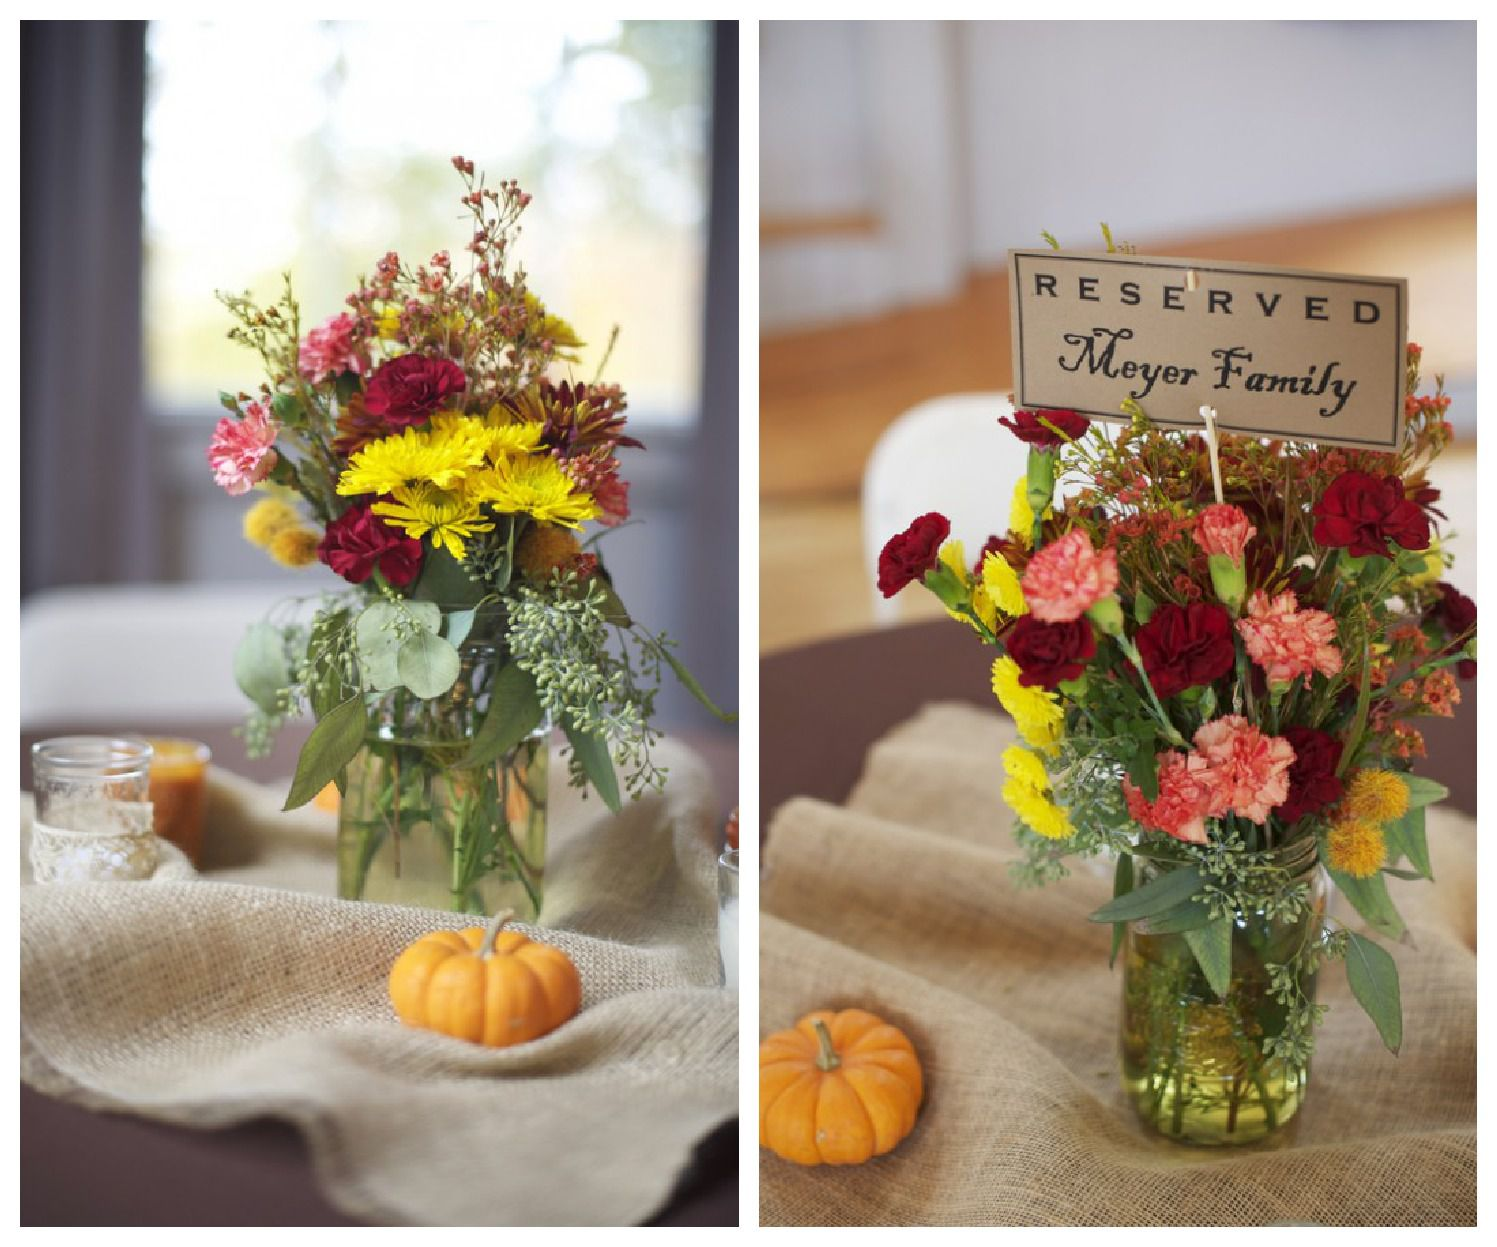 Peaceably Reception Rustic Wedding Decorations Fall Rustic Wedding Centerpiece Rustic Wedding Centerpiece Ideas Rustic Wedding Rustic Wedding Decorations curbed Rustic Wedding Decor